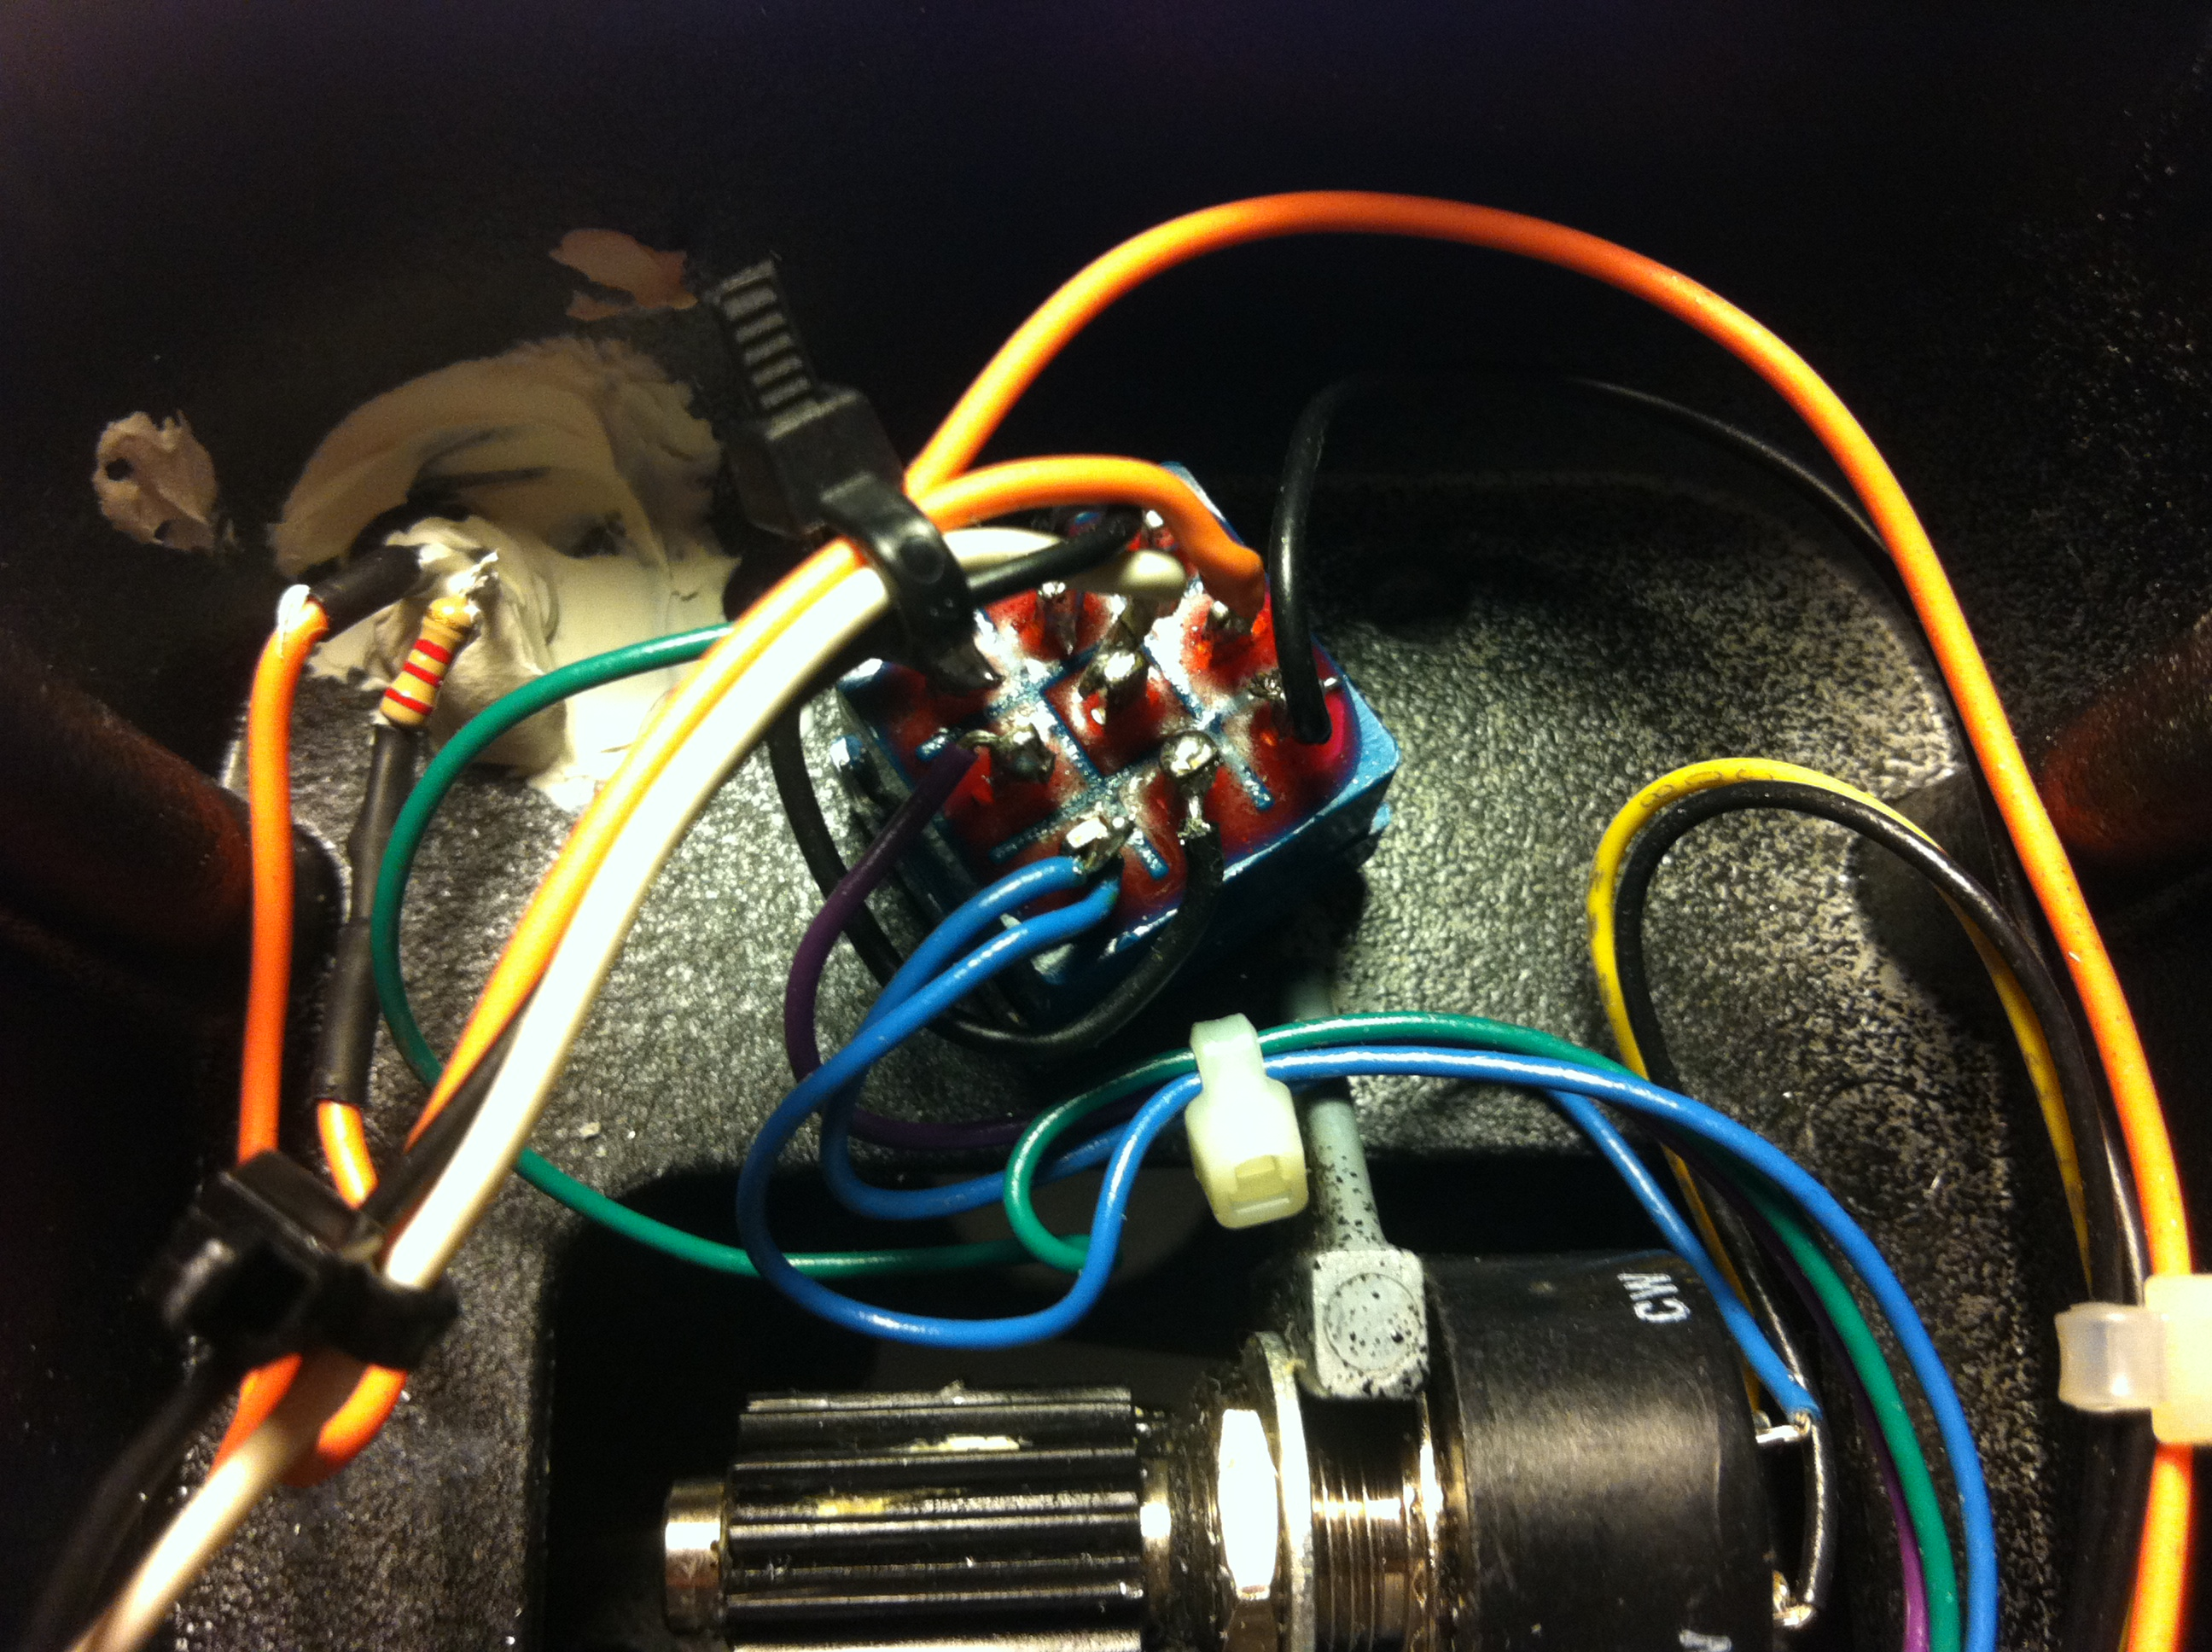 Convert Crybaby Wah Pedal To True Bypass Daniele Turani Wiring Diagram 3pdt Switch Installed